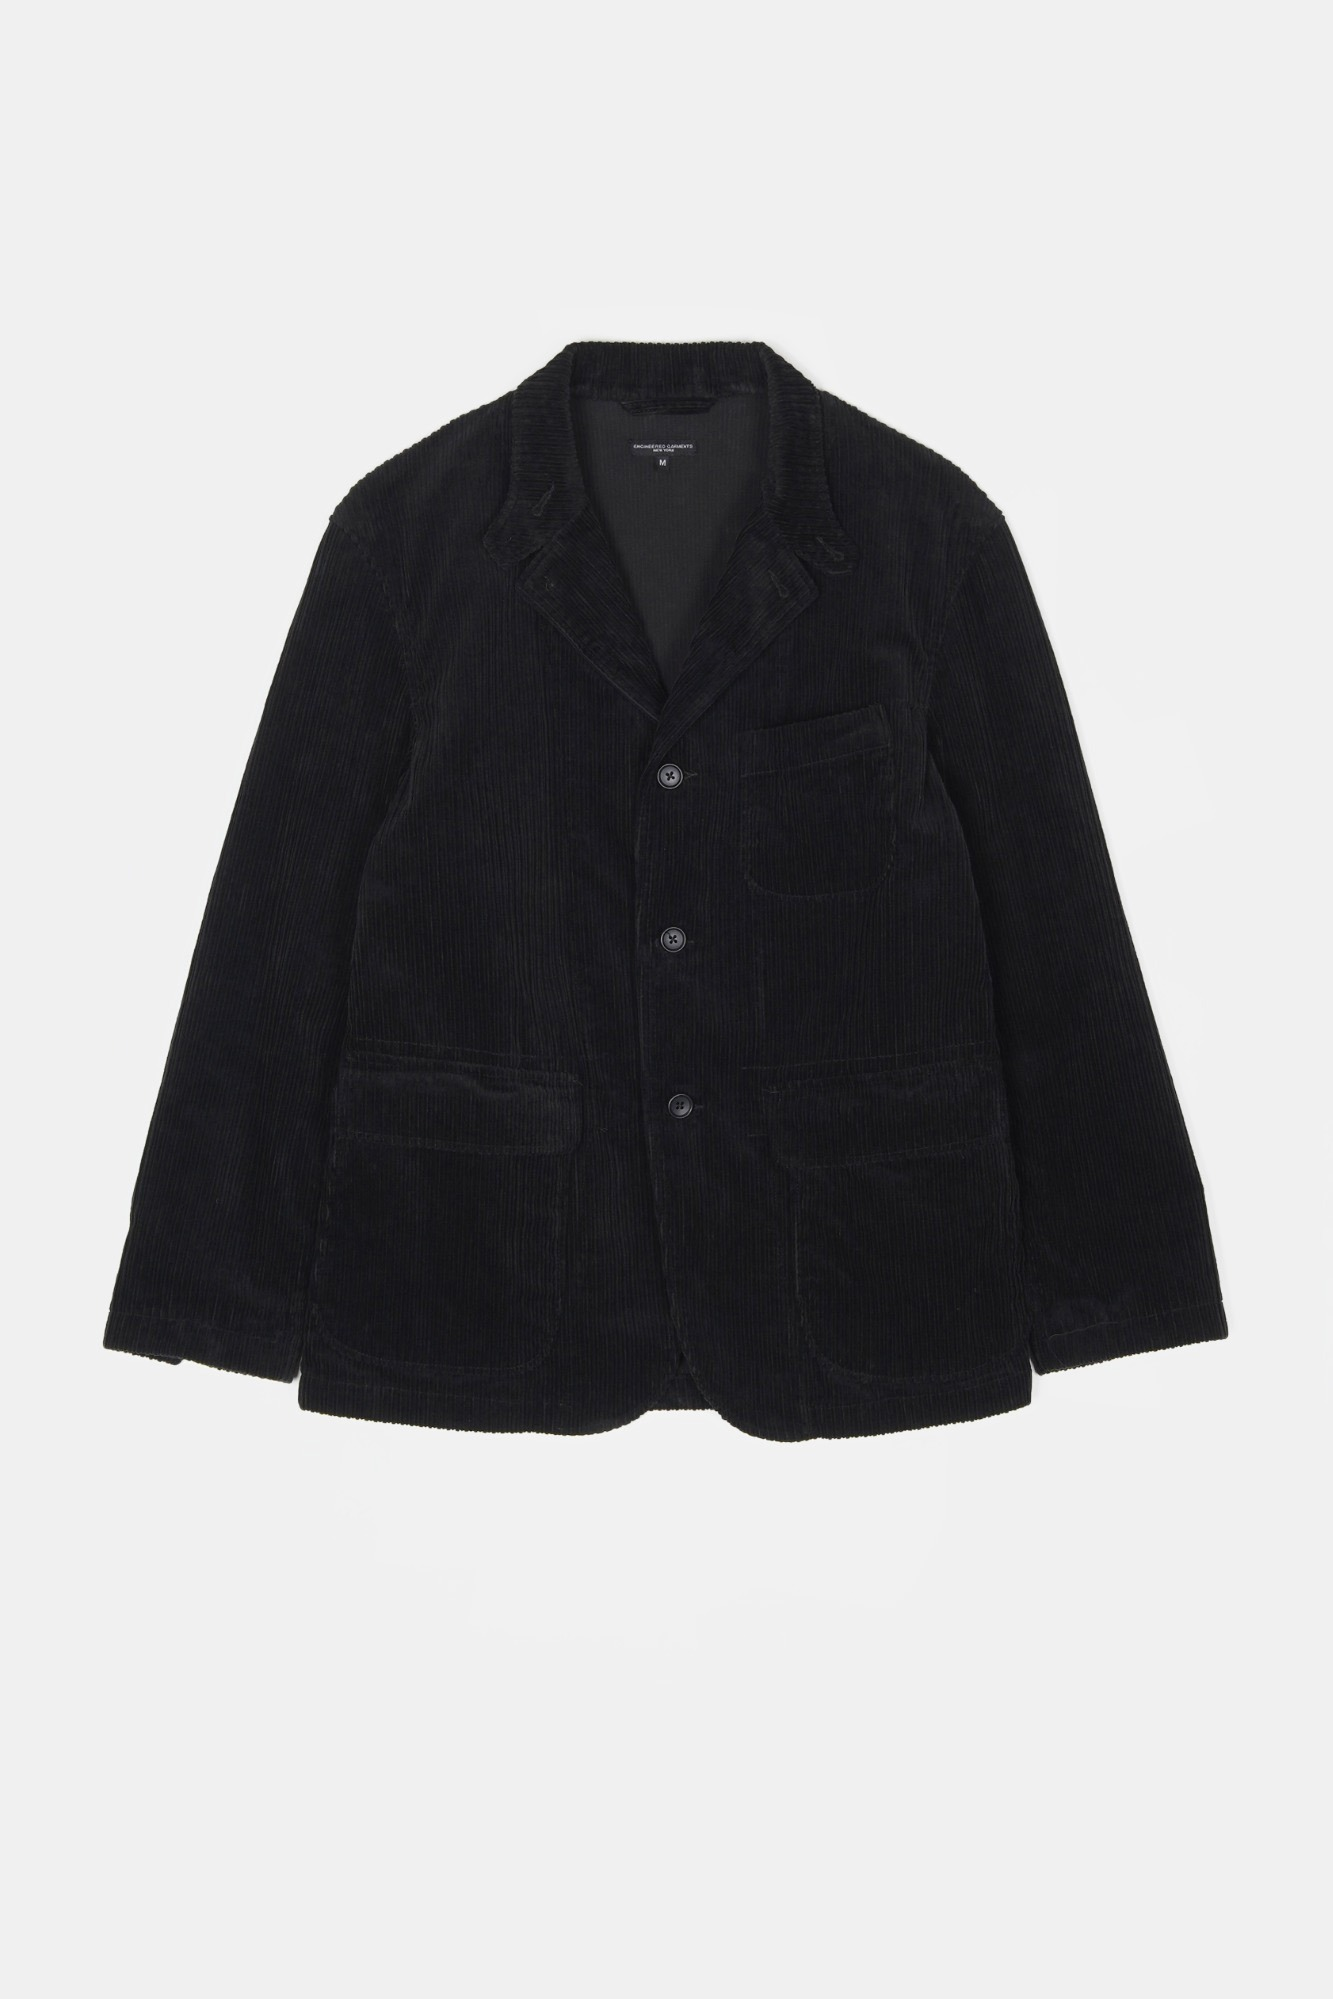 "ENGINEERED GARMENTS Loiter Jacket ""Black Hi-Lo Corduroy"""